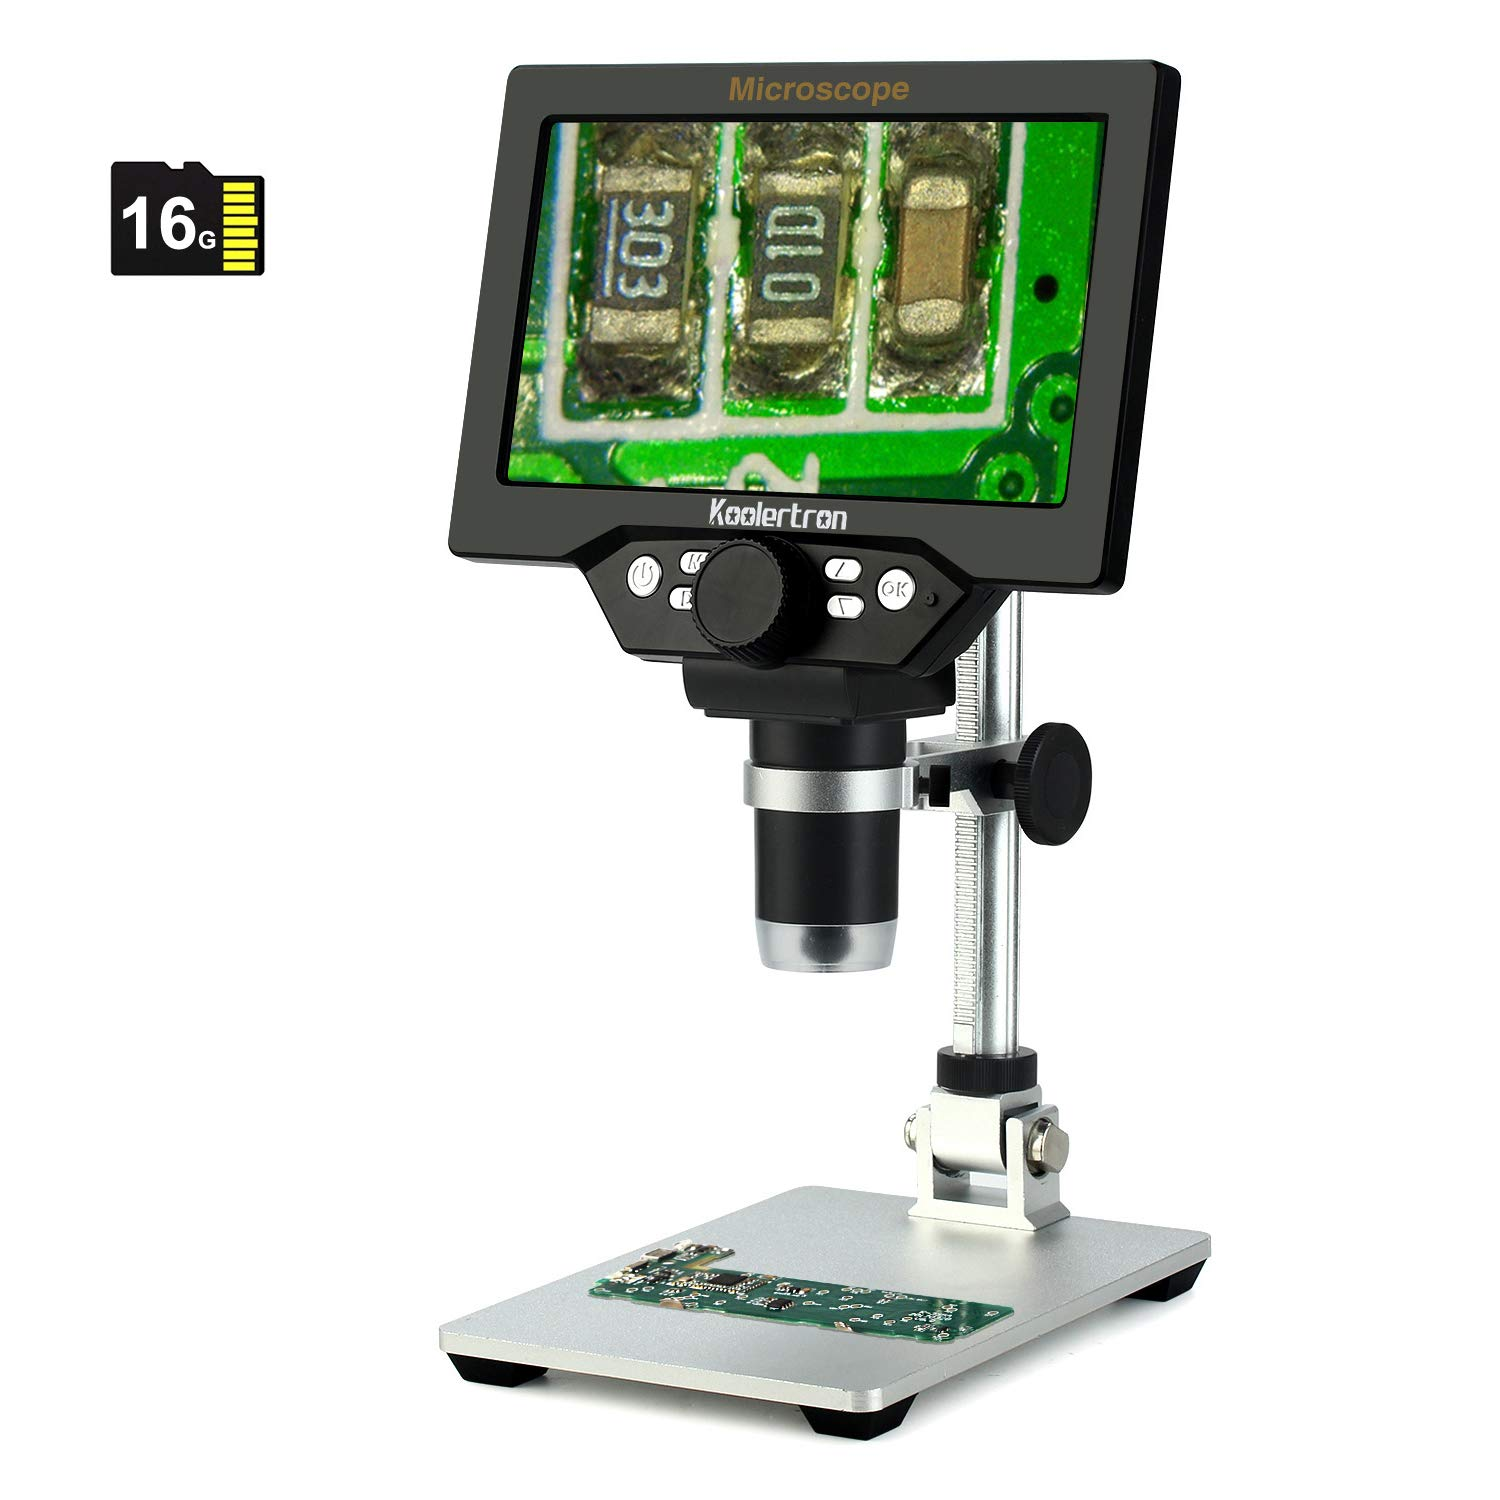 7 inch LCD Digital USB Microscope with 16G TF Card,Koolertron 12MP 1-1200X Magnification Handheld Camera Video Recorder,8 LED Light,Rechargeable Battery for Circuit Board Repair Soldering PCB Coins